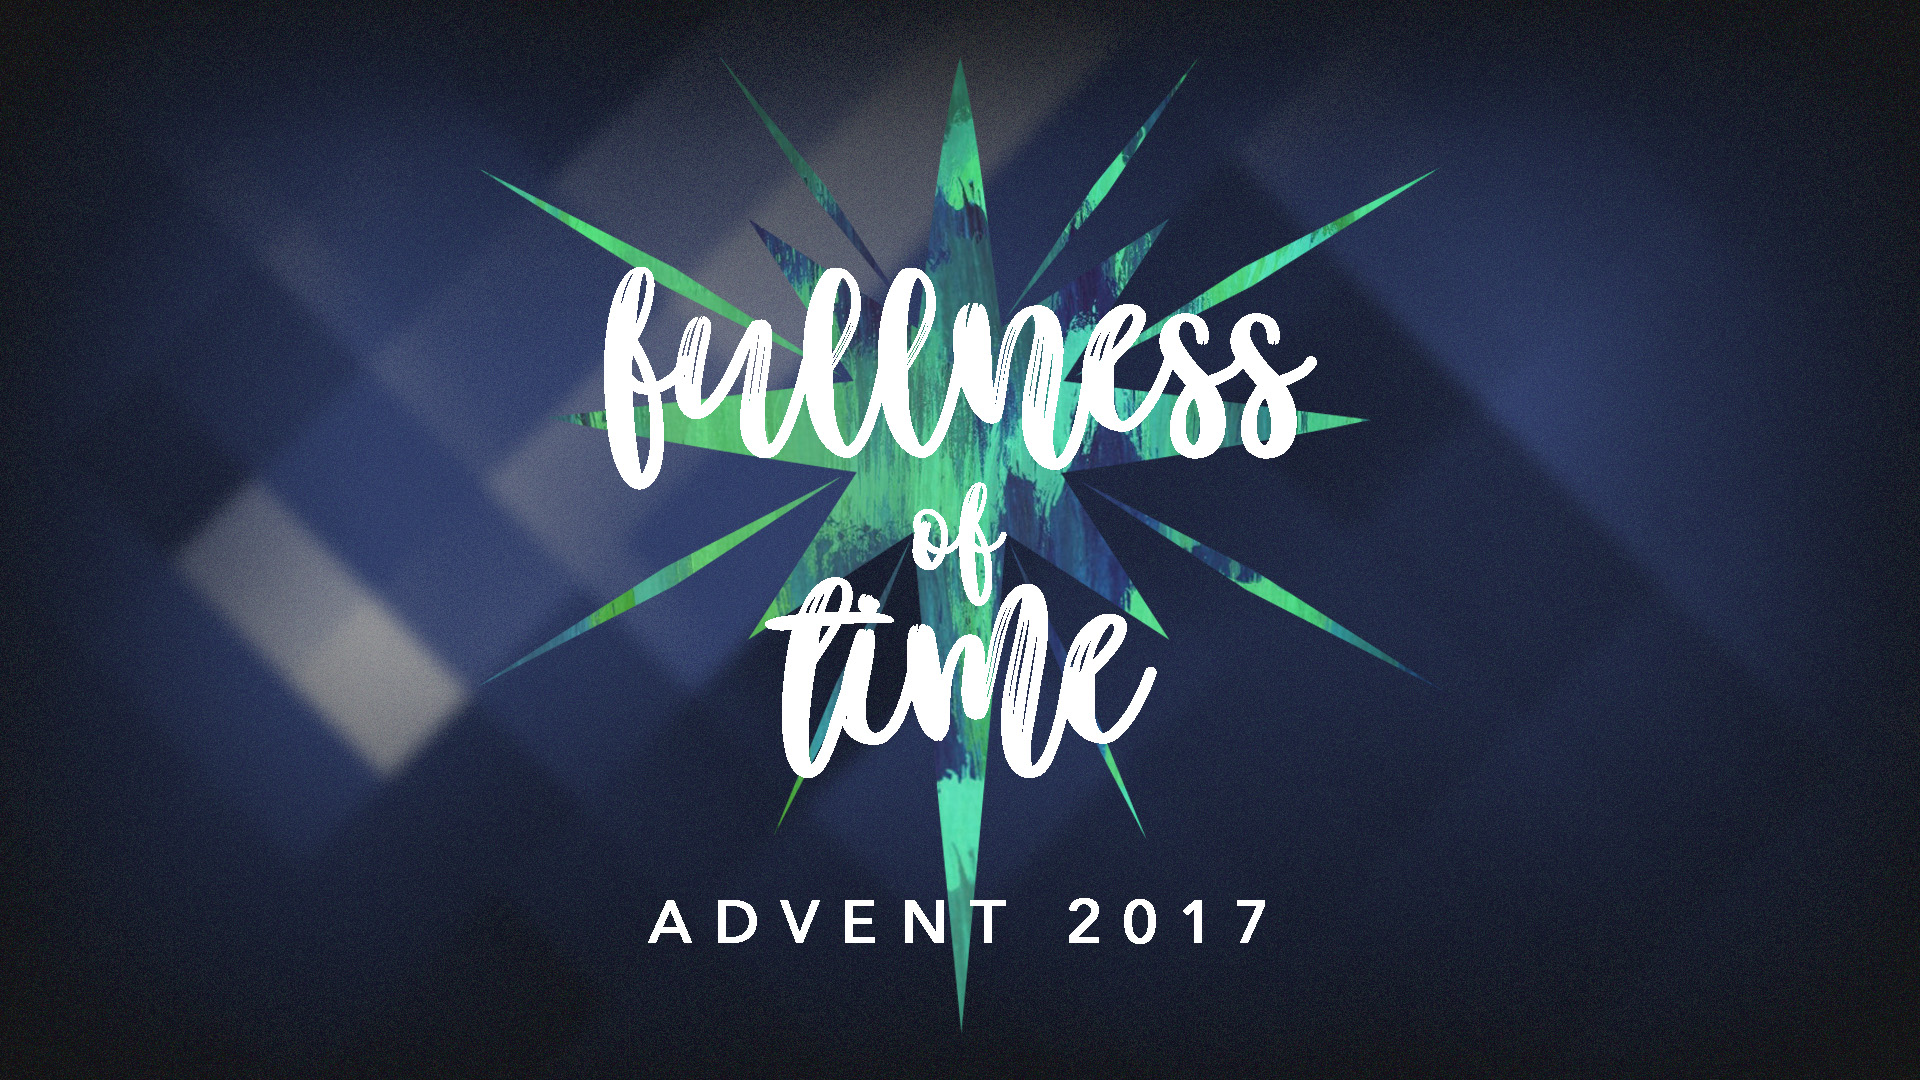 Fullness of Time: Advent 2017